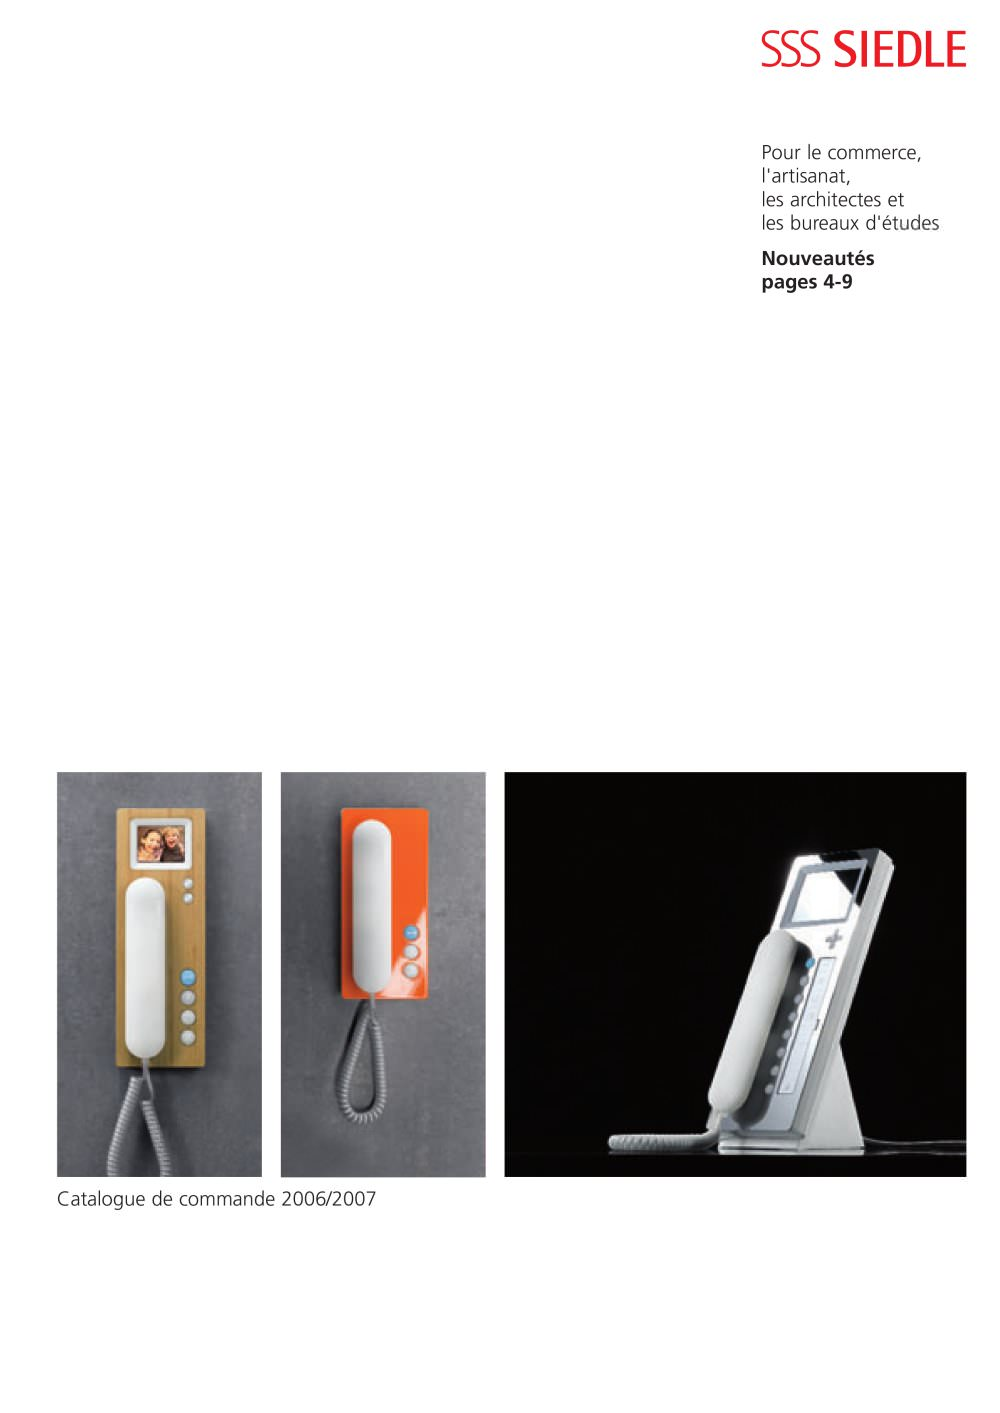 siedle catalogue 2006-2007 - sss siedle - catalogue pdf